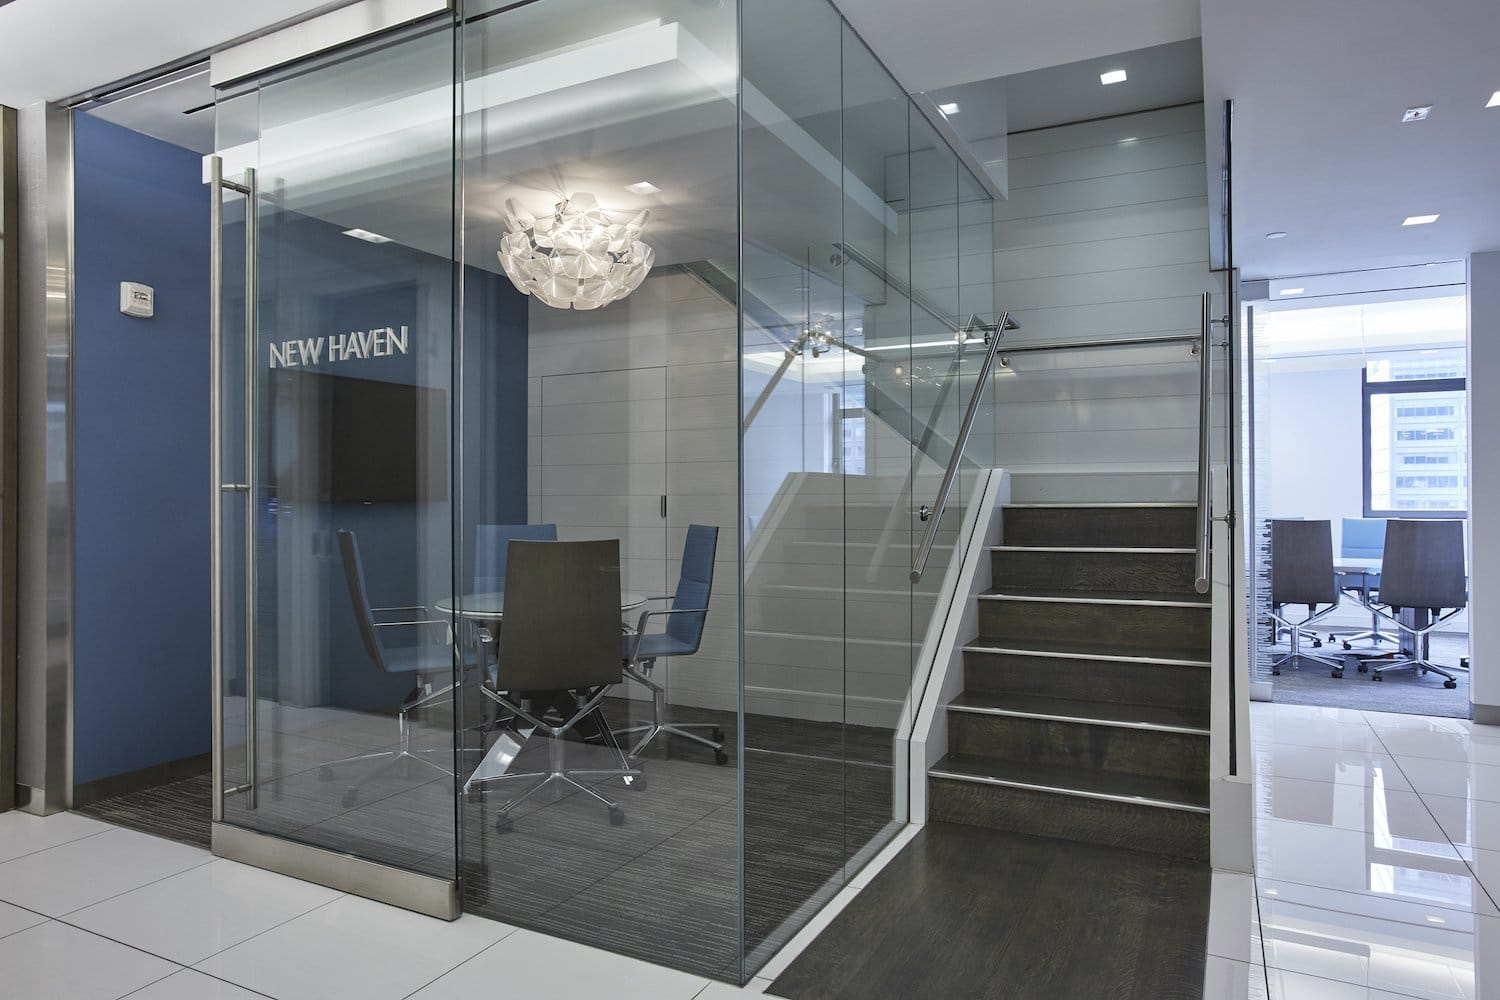 New Haven meeting room behind glass walls, front angle